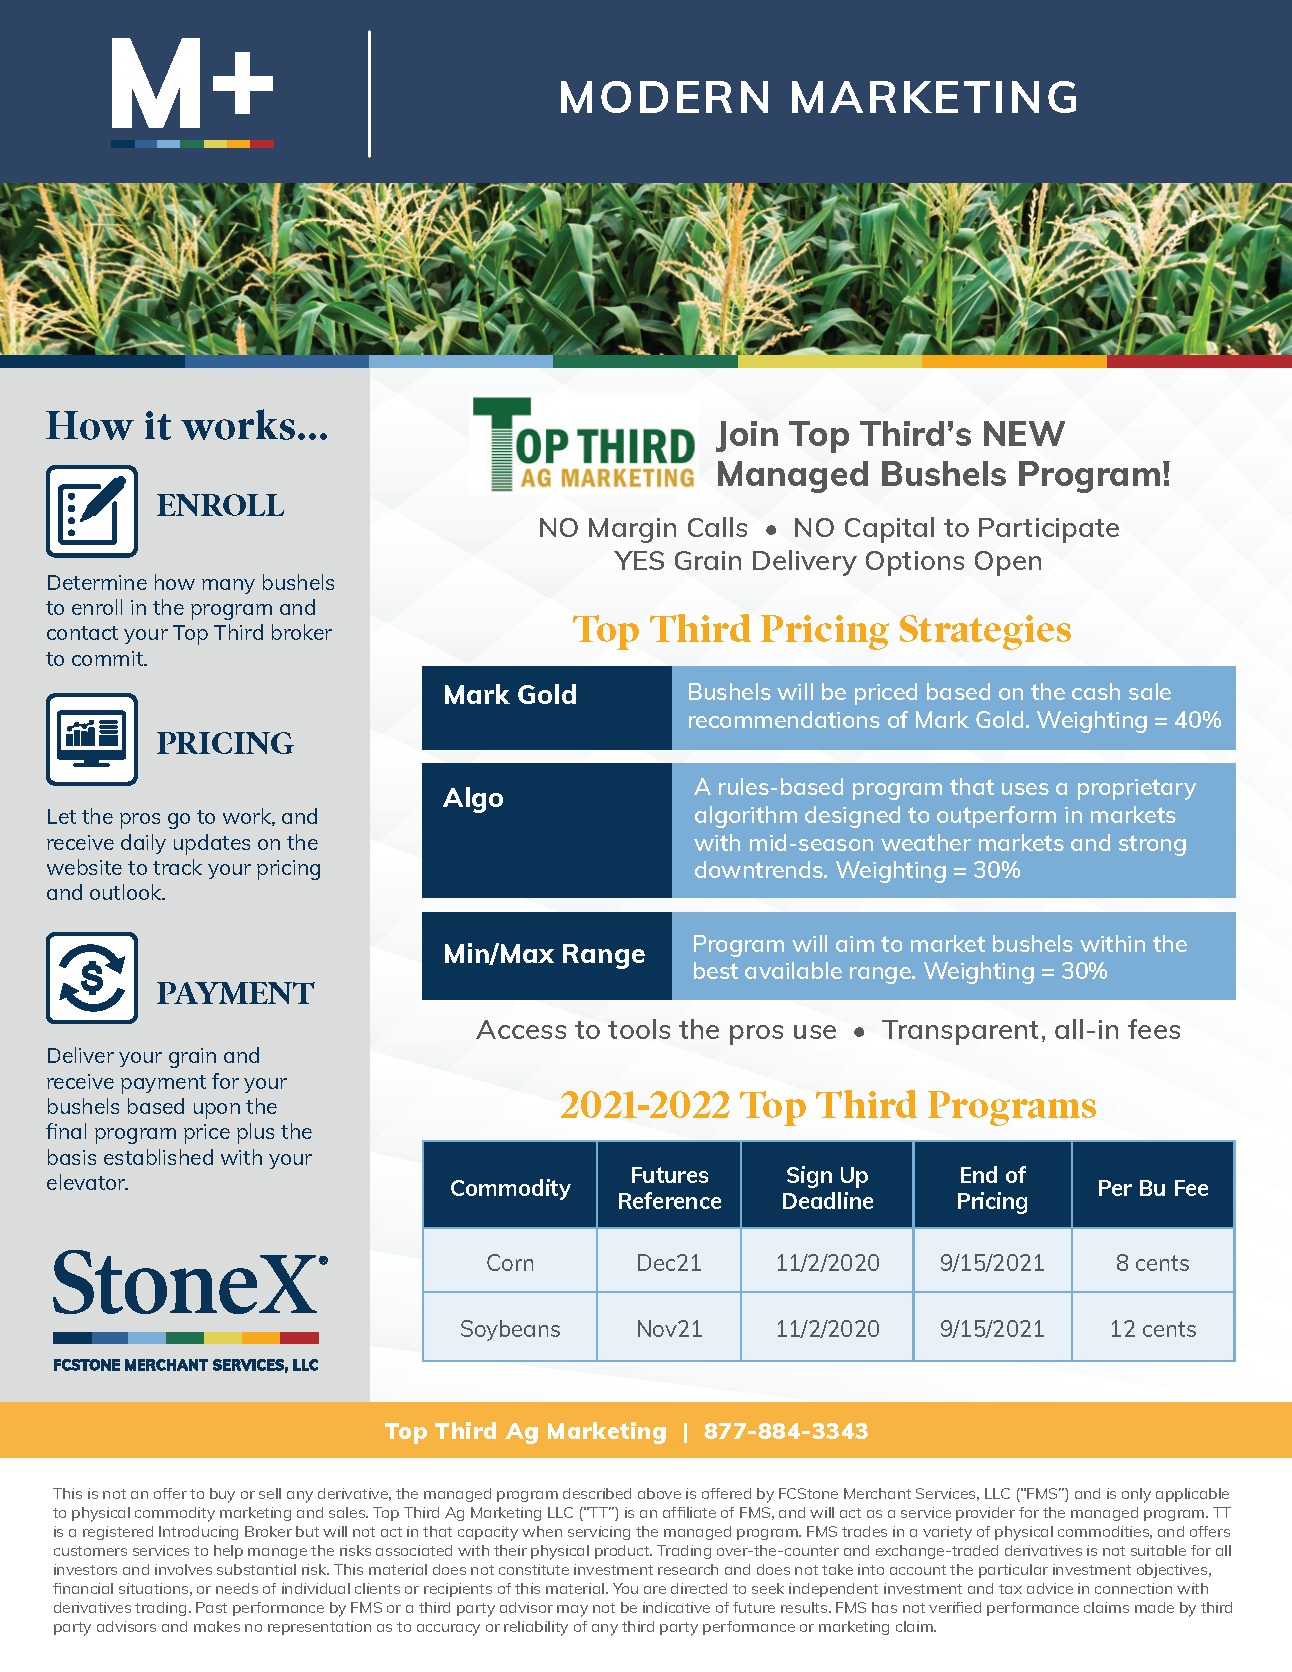 Top Third — M+ Managed Bushels Program (2021-2022)